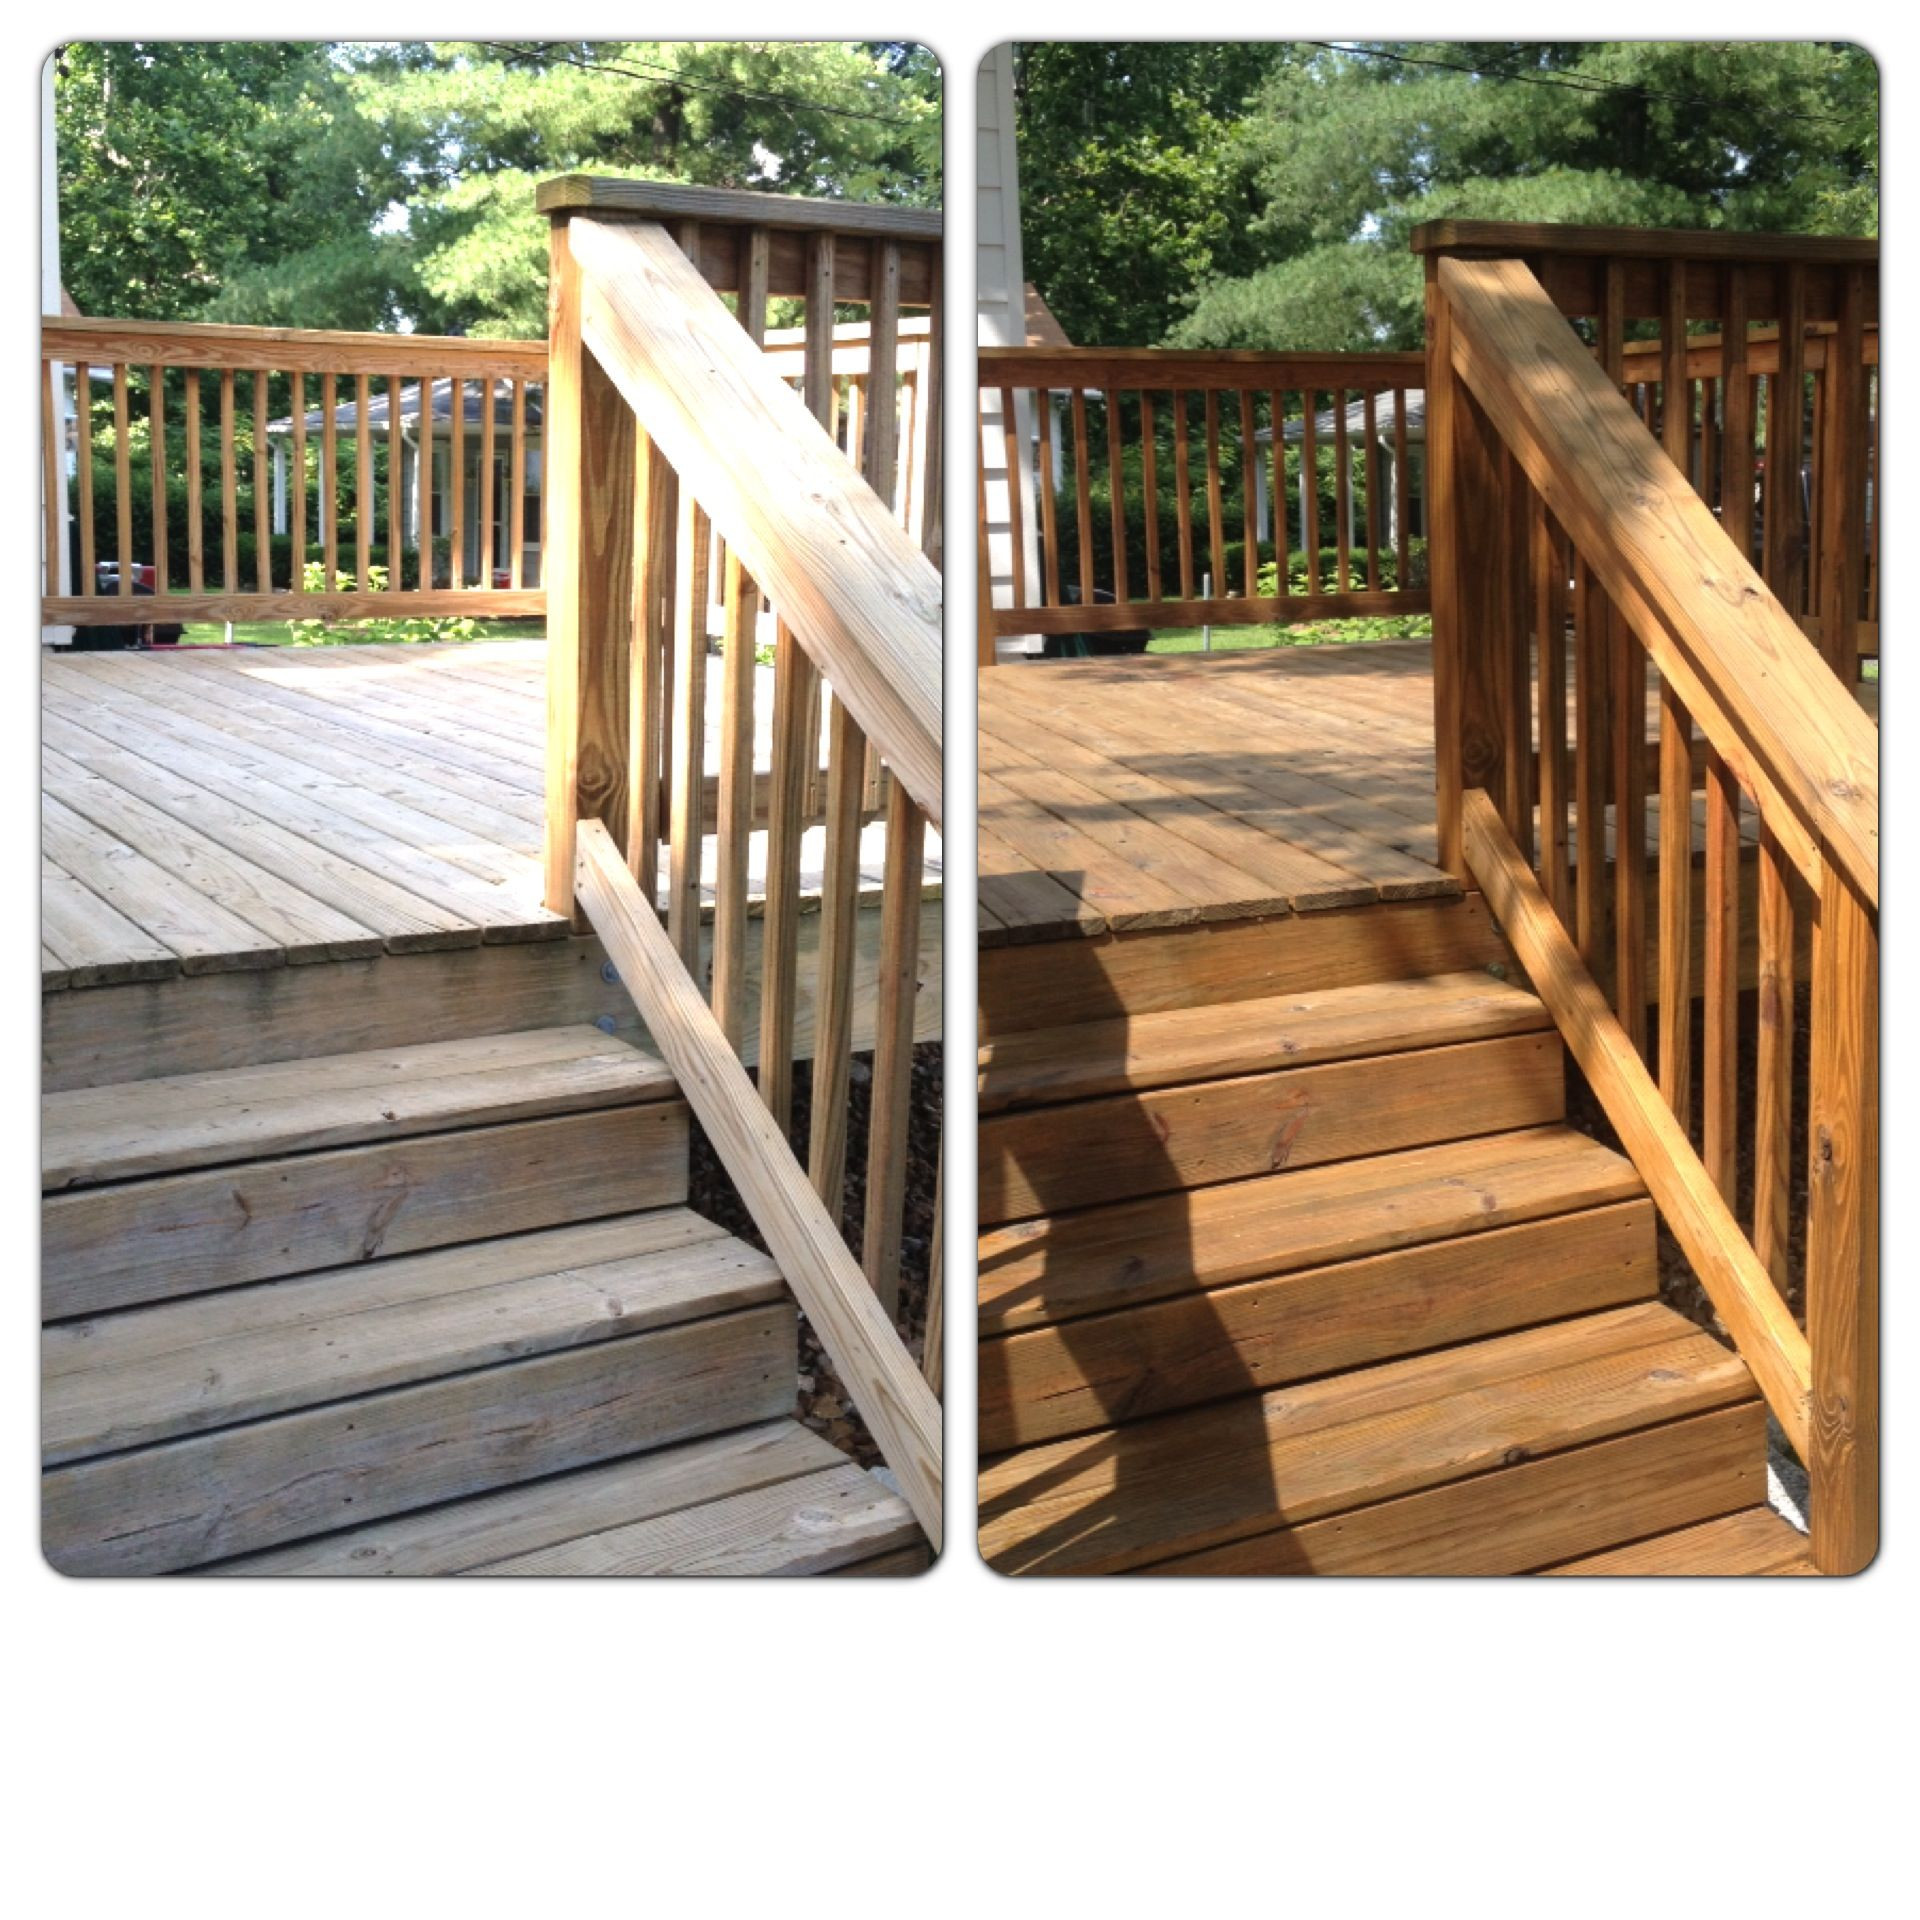 Sherwin Williams Deck Paint Reviews  Sherwin Williams Deckscapes cedar oil based deck stain